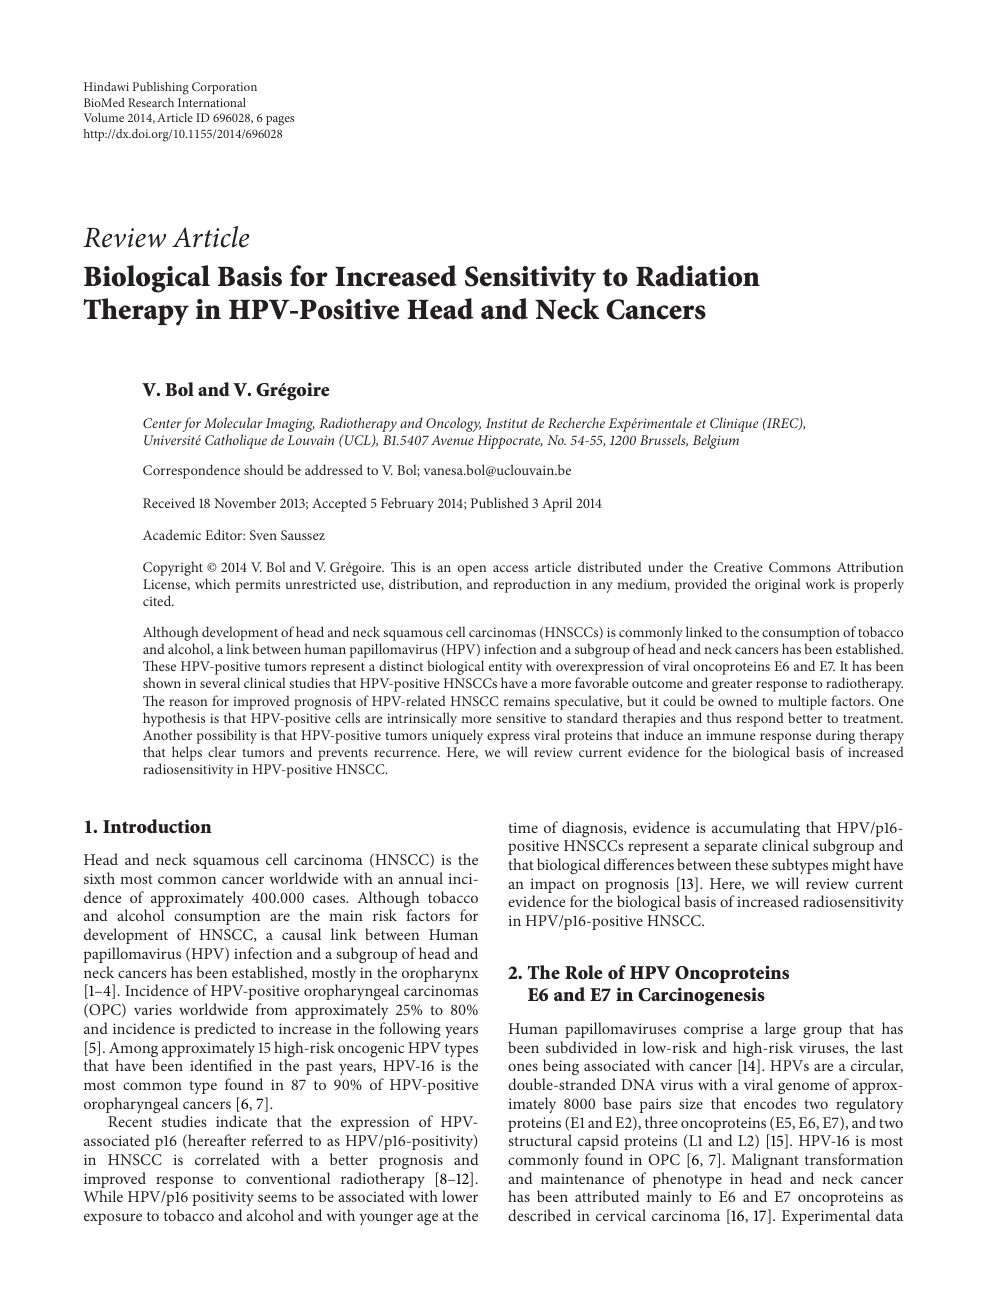 Biological Basis for Increased Sensitivity to Radiation Therapy in